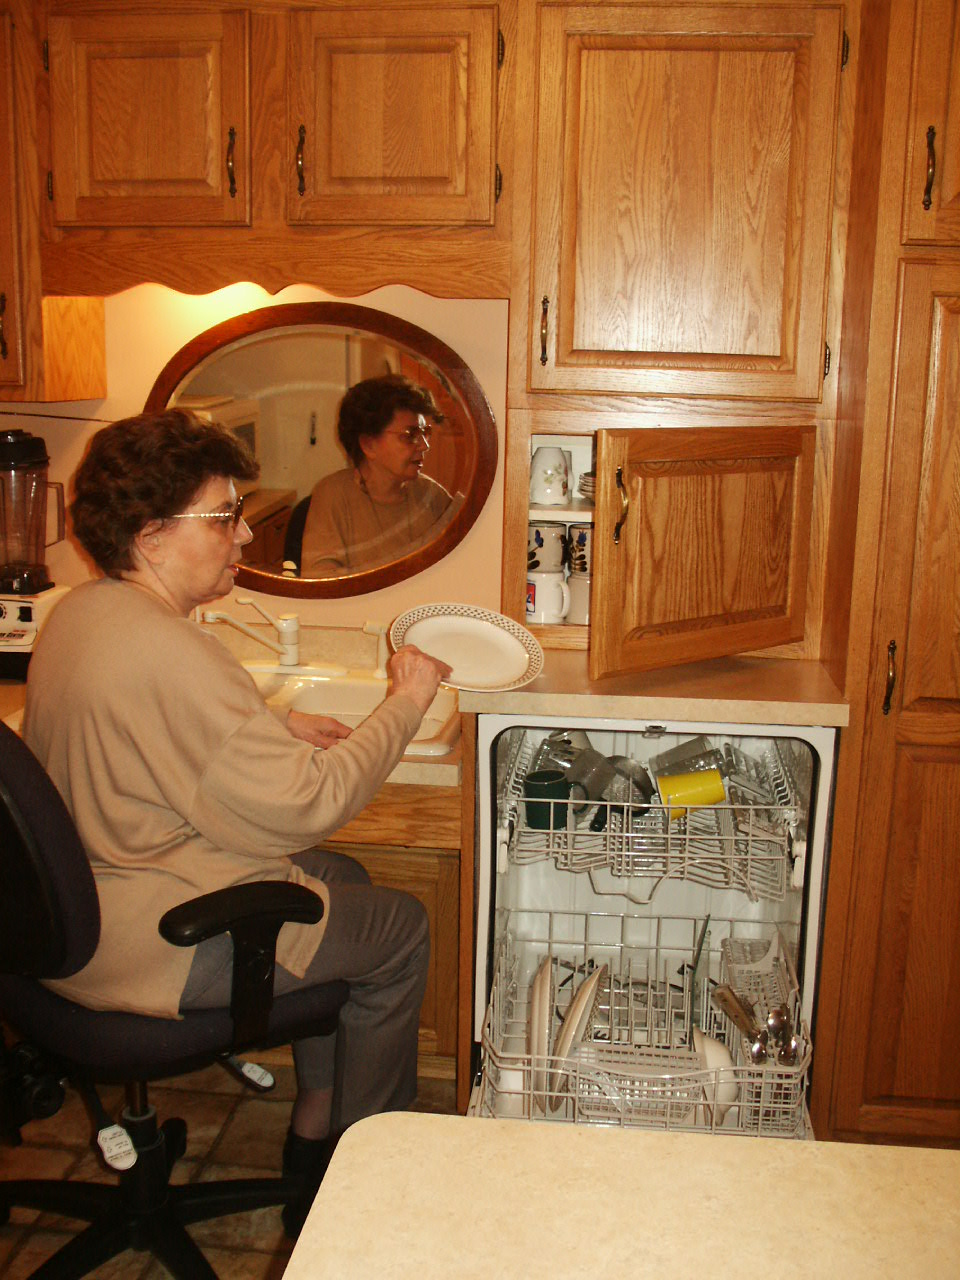 Jeanne putting dirty dishes into her dishwasher while in a seated position.